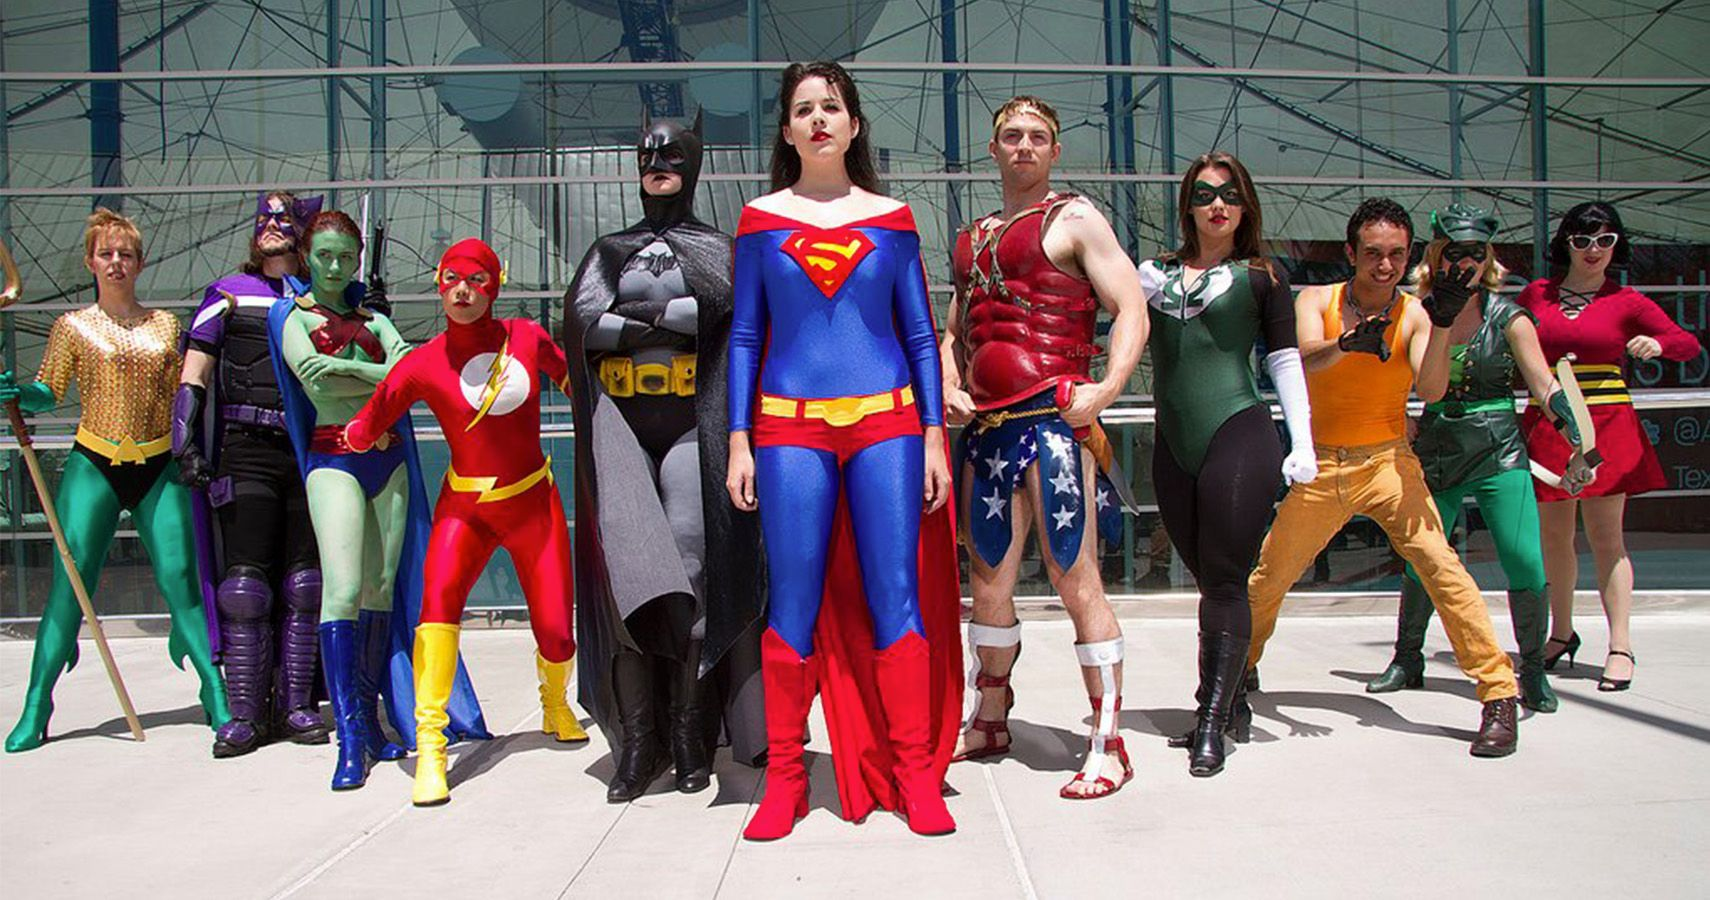 15 Amazing Gender-Swapped Cosplays That Defy Gender Expectations